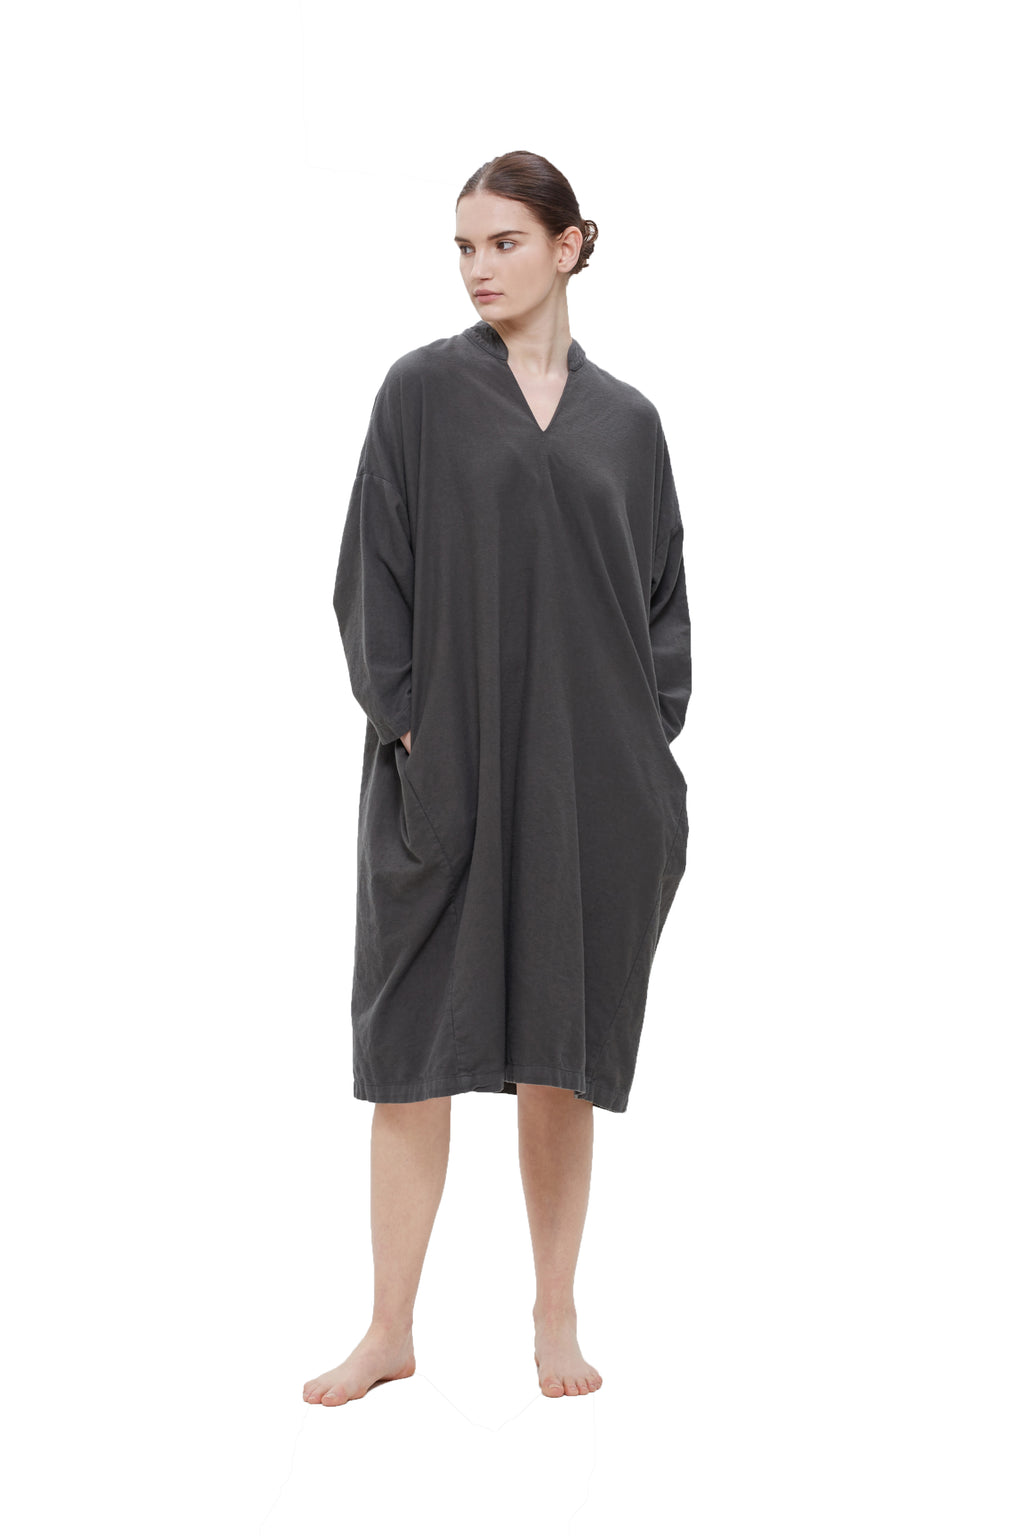 LONG BOX DRESS - DARK GREY